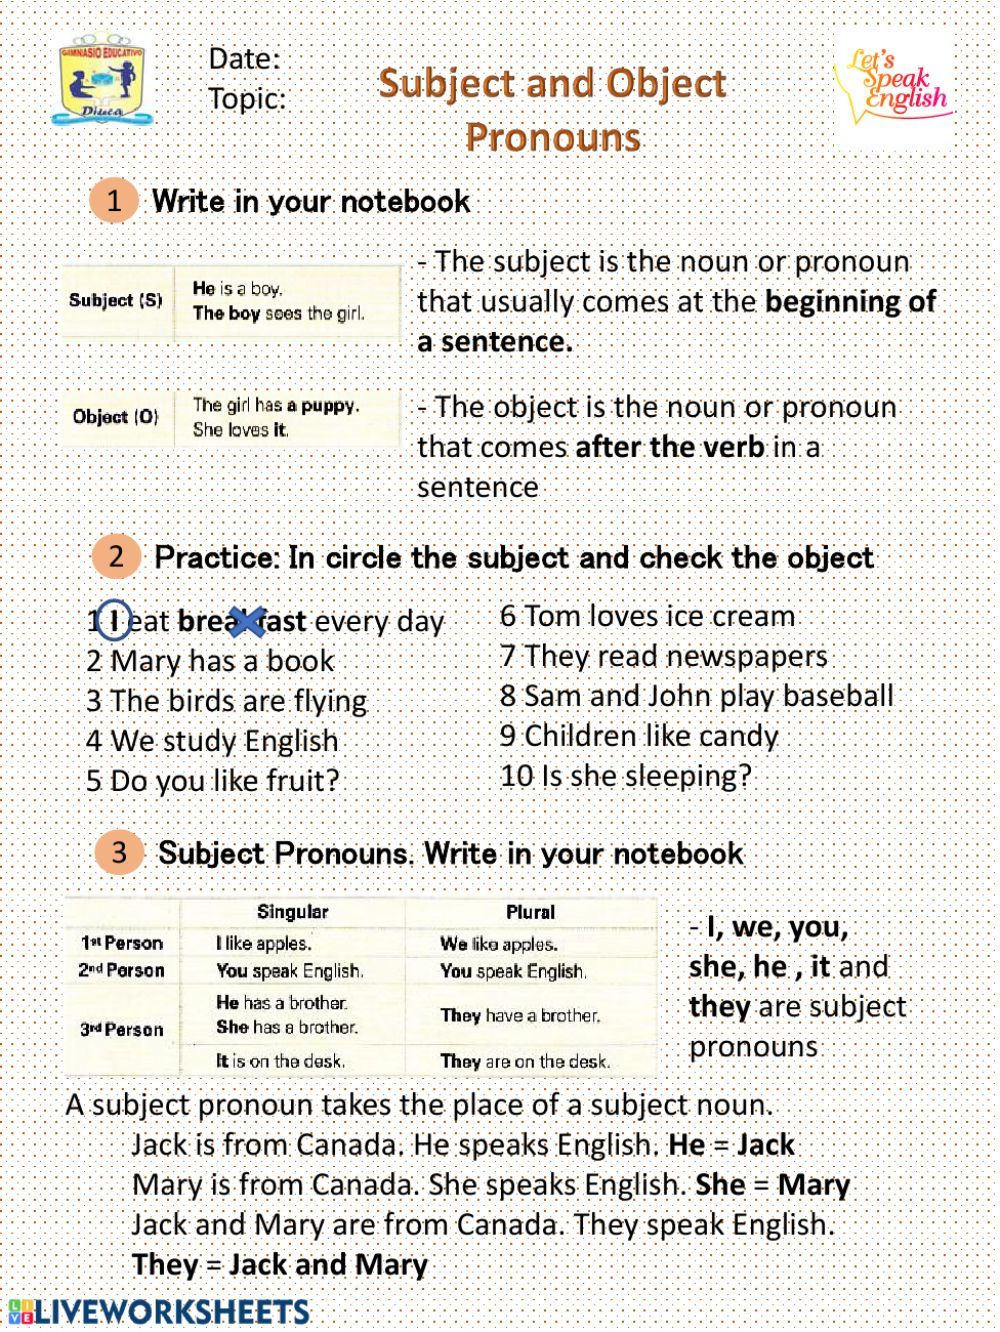 Subject and object pronouns interactive and downloadable